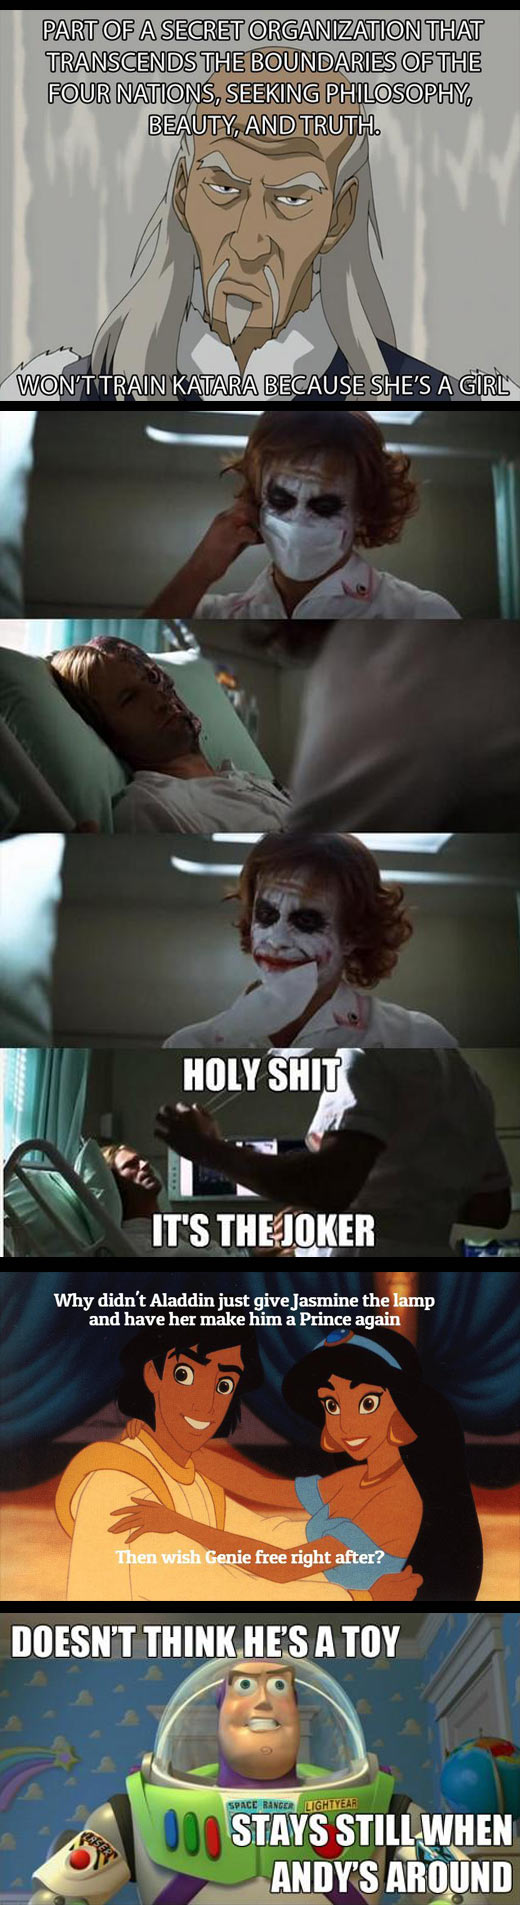 funny-picture-plot-holes-movies-Joker